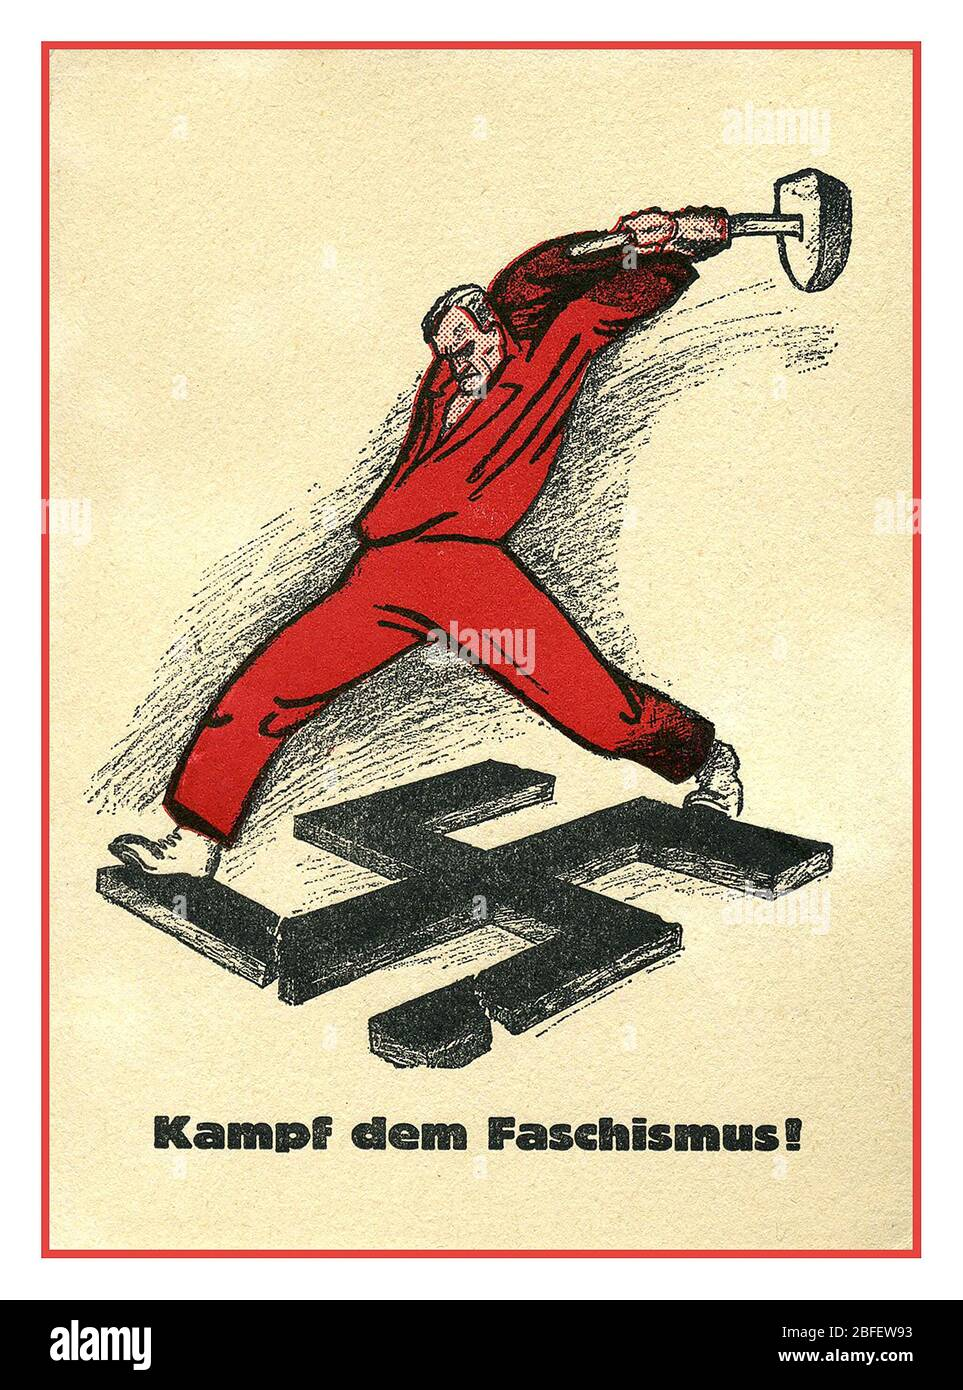 Vintage propaganda 1930s archive anti-Nazi poster 'Fight fascism' 1938, Austrian Anti Nazi Propaganda.-AK Kampf dem Faschismus, Man in red smashes swastika with hammer Mann in rot mit Hammer zerschlägt Hakenkreuz Stock Photo